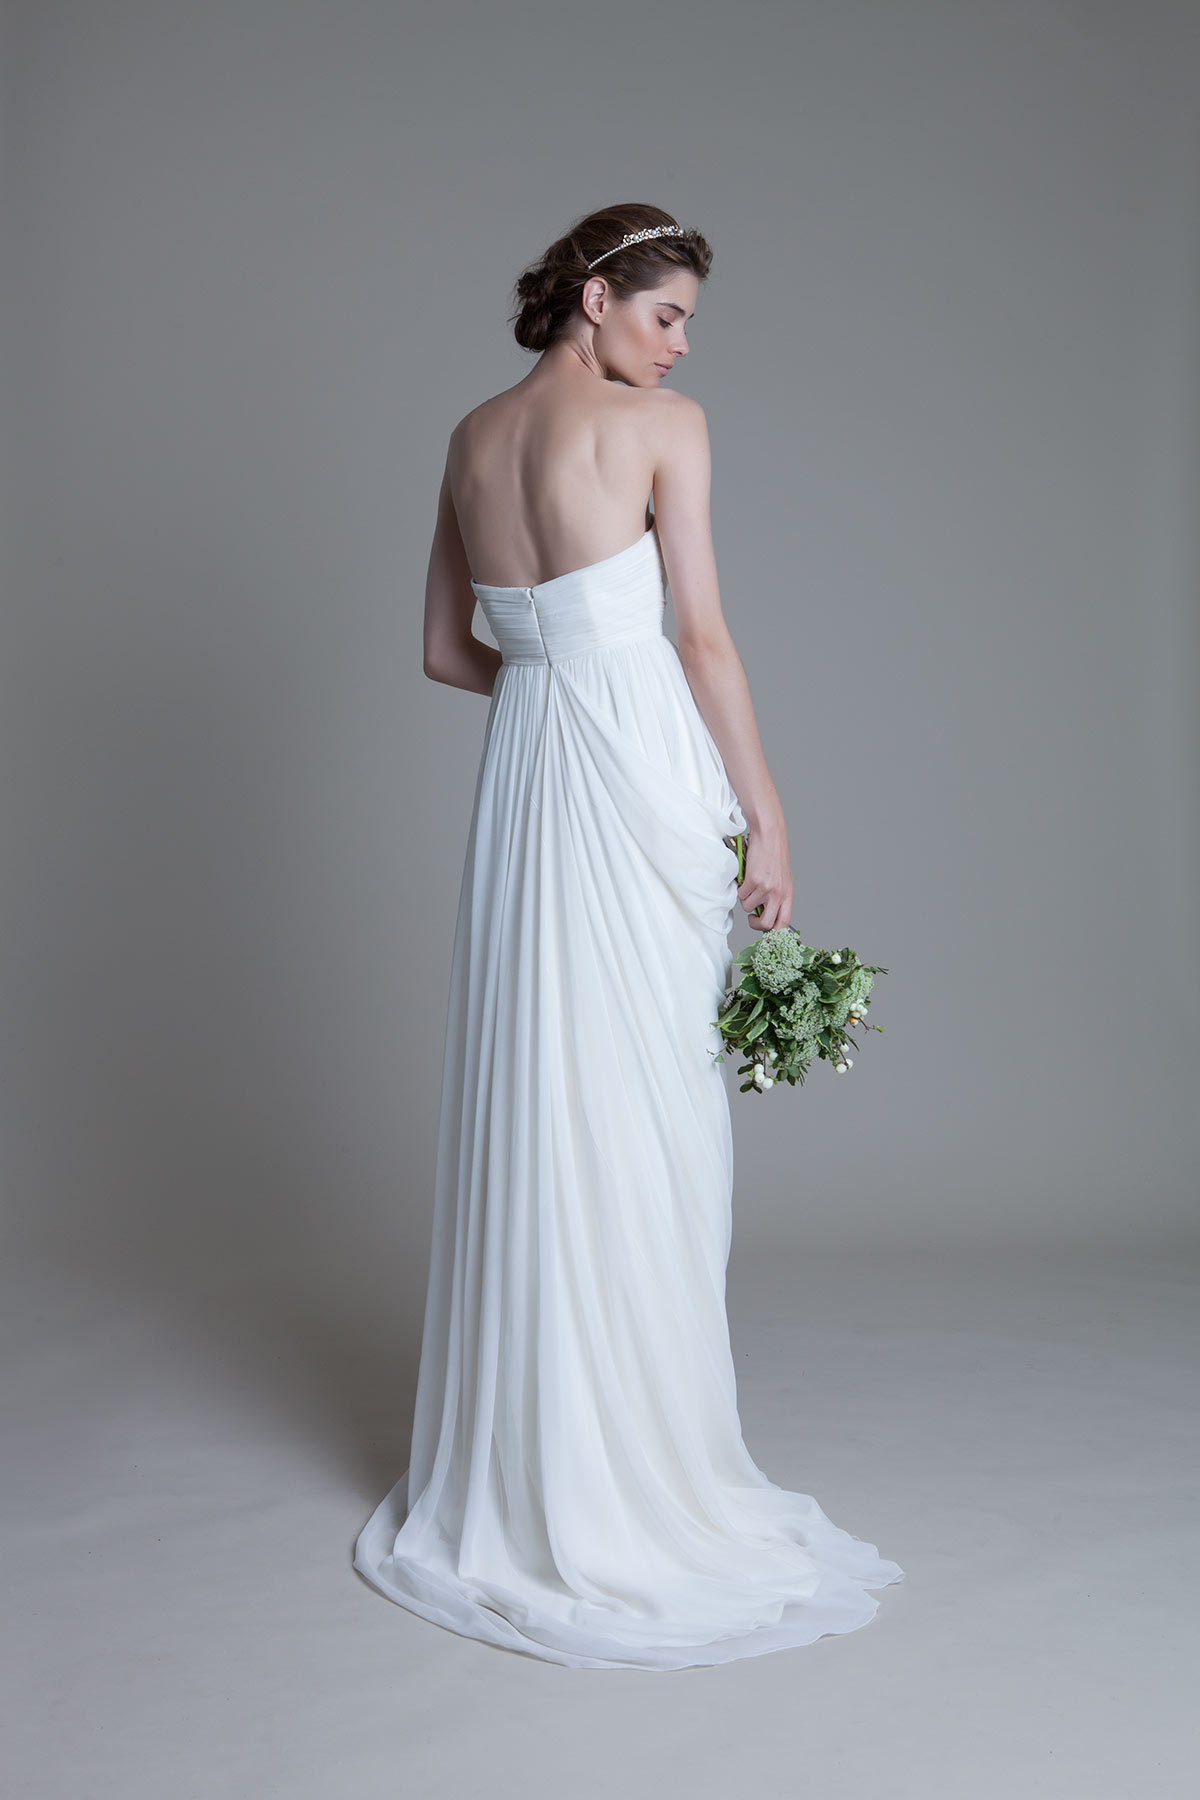 Back View of the Georgina soft pleated chiffon boned bodice with a draped grecian chiffon skirt with train bridal wedding dress by Halfpenny London